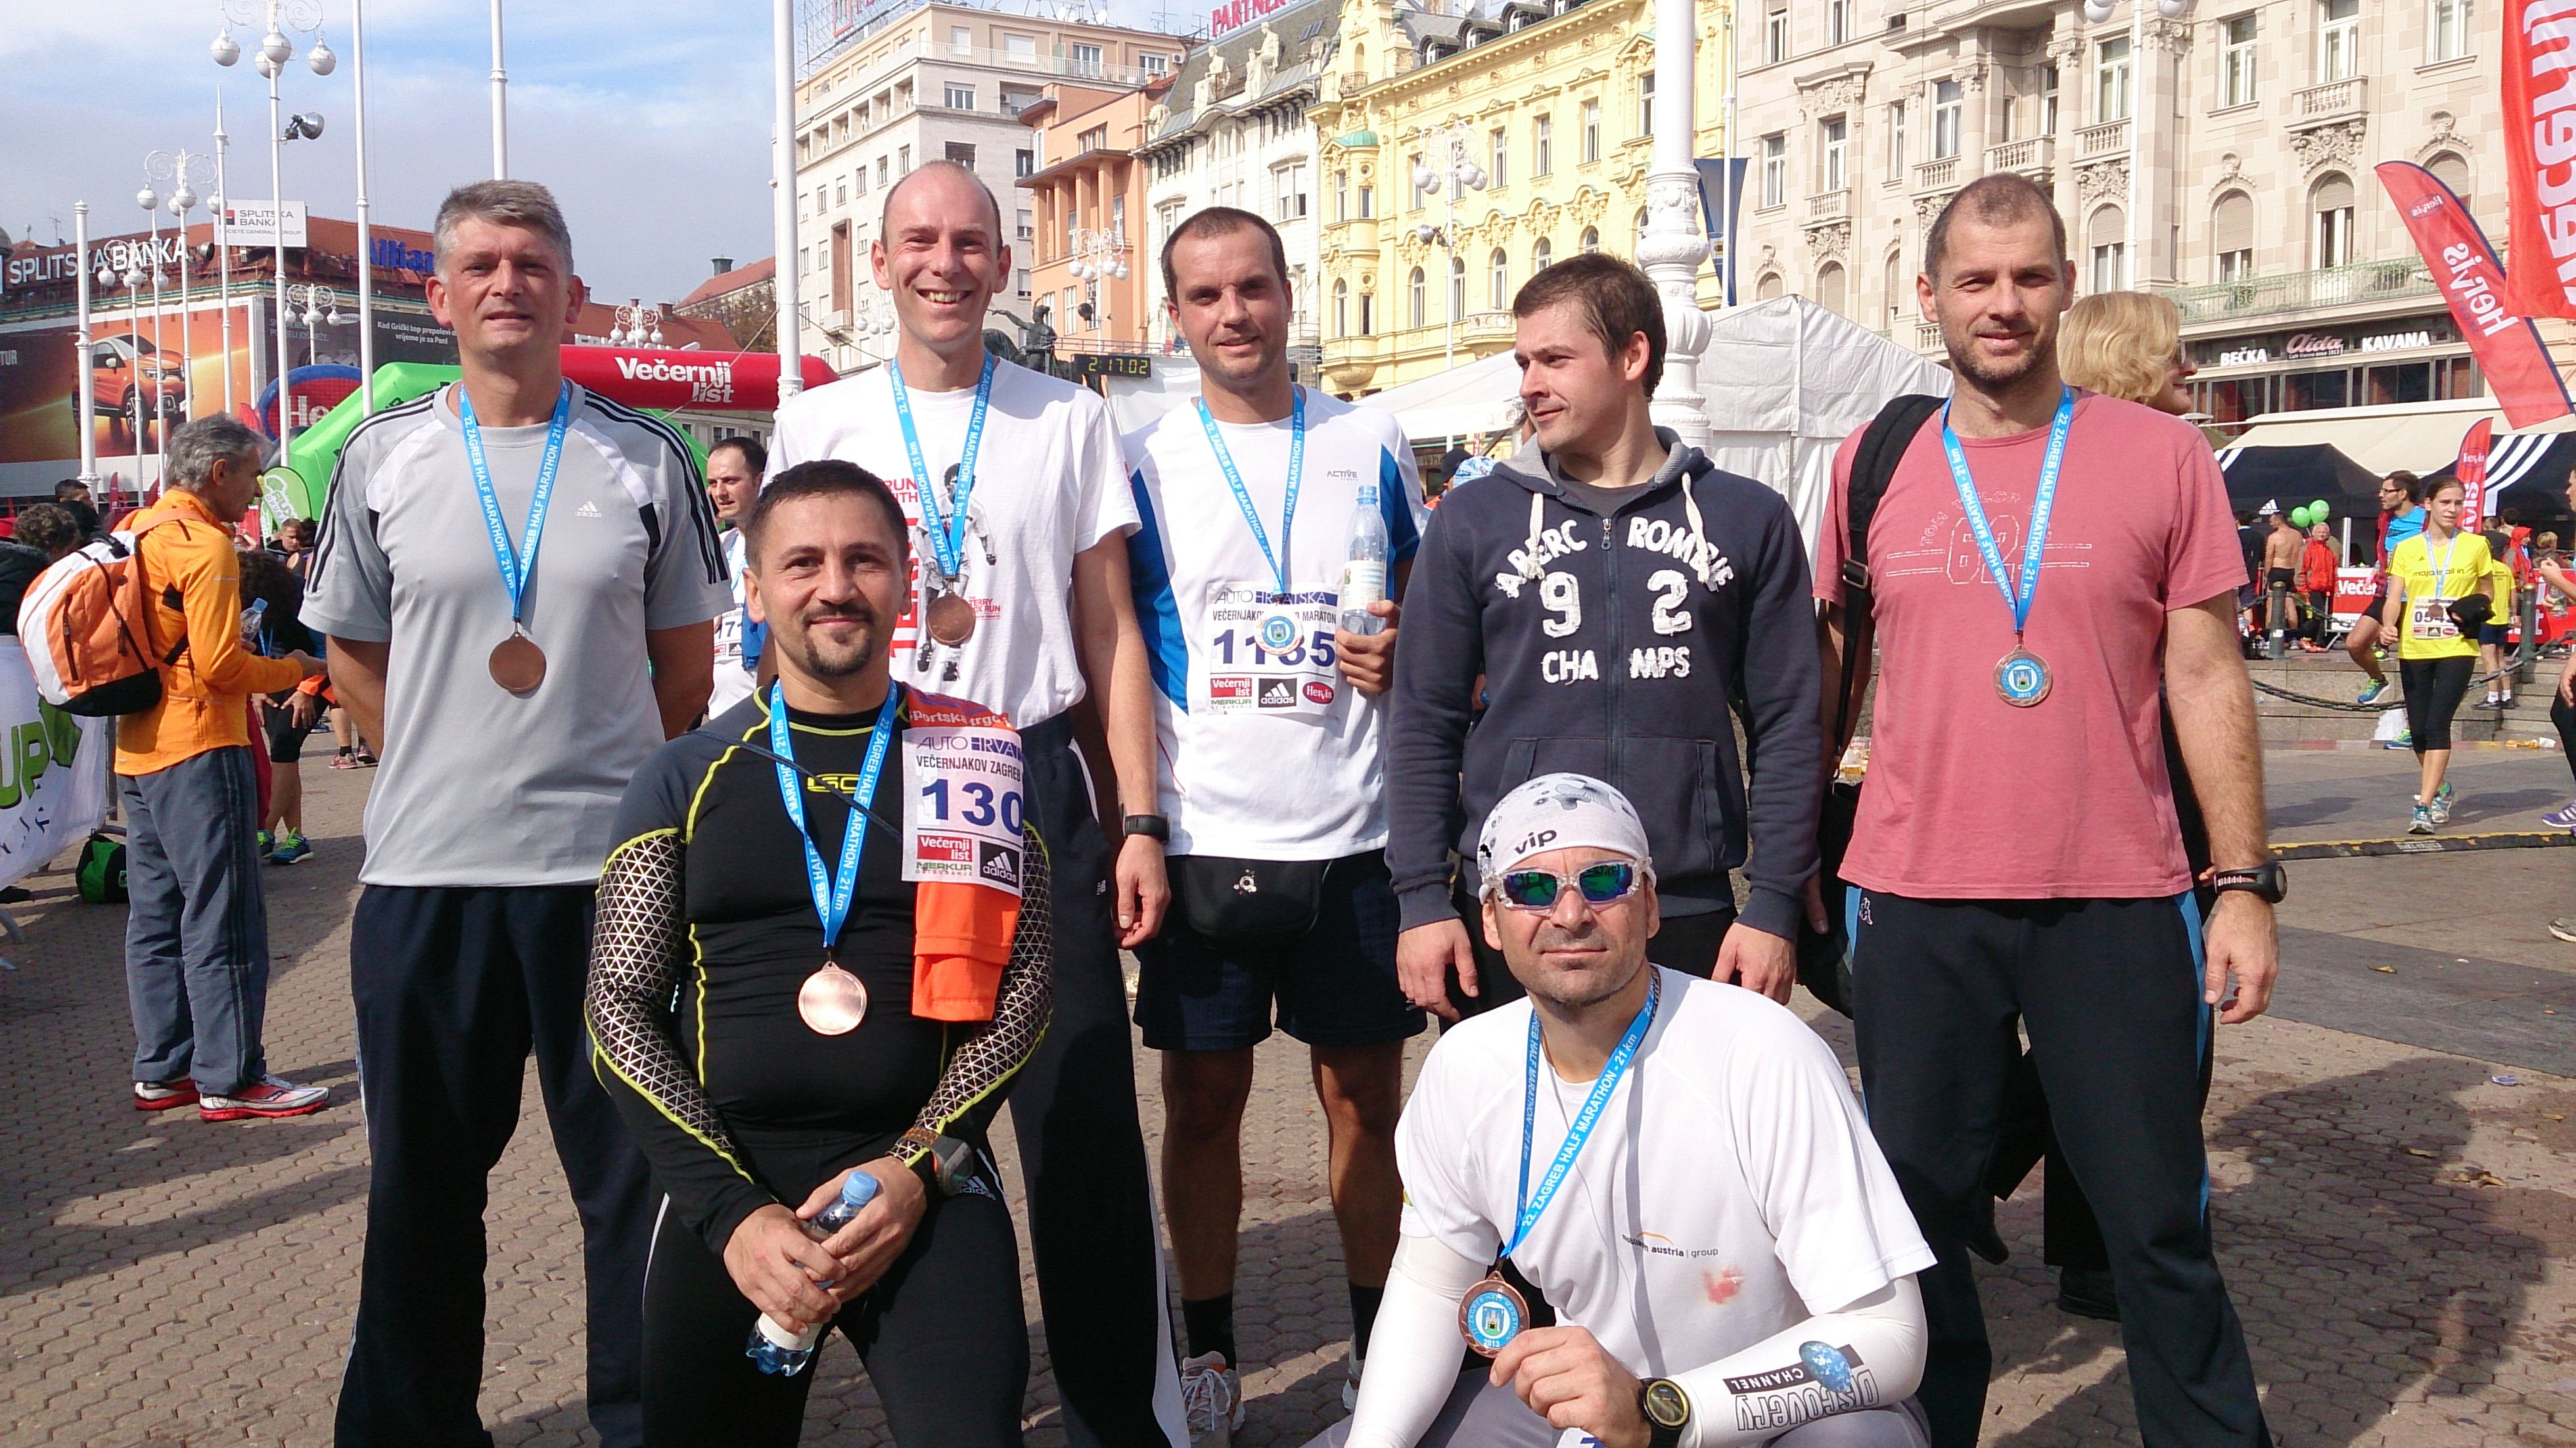 vipnet running team